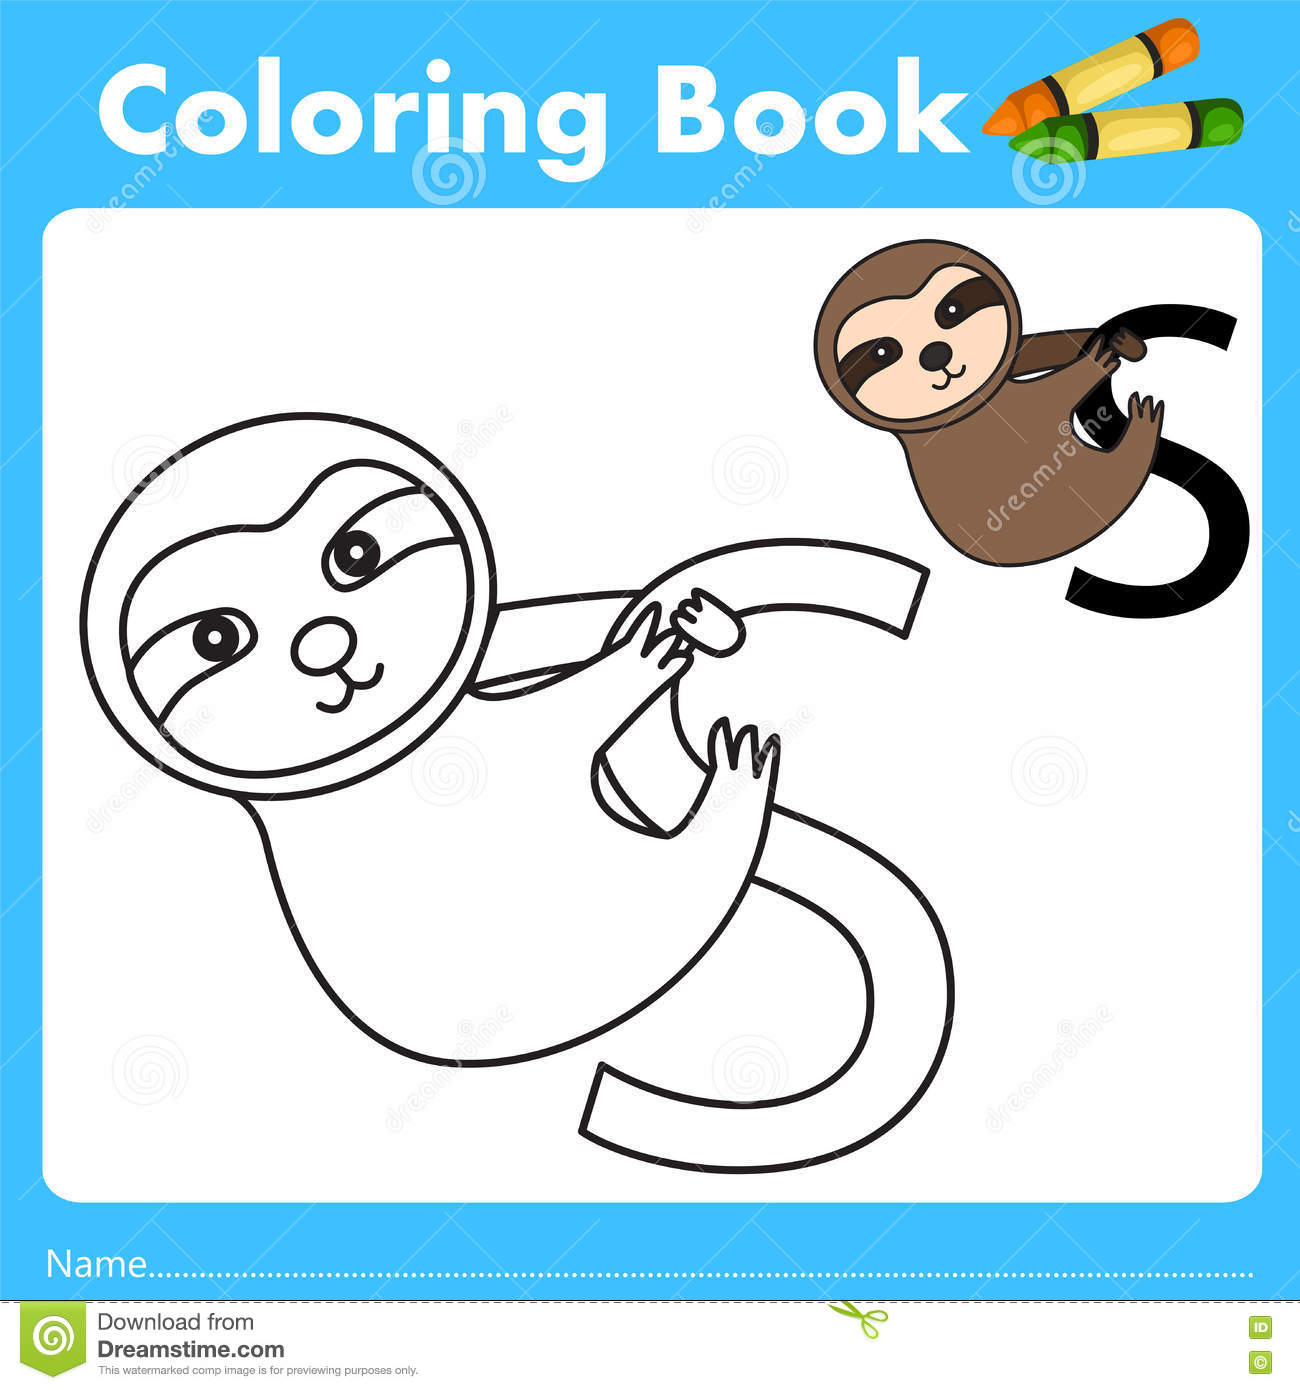 Book color illustrator - Illustrator Of Color Book With Sloth Animal